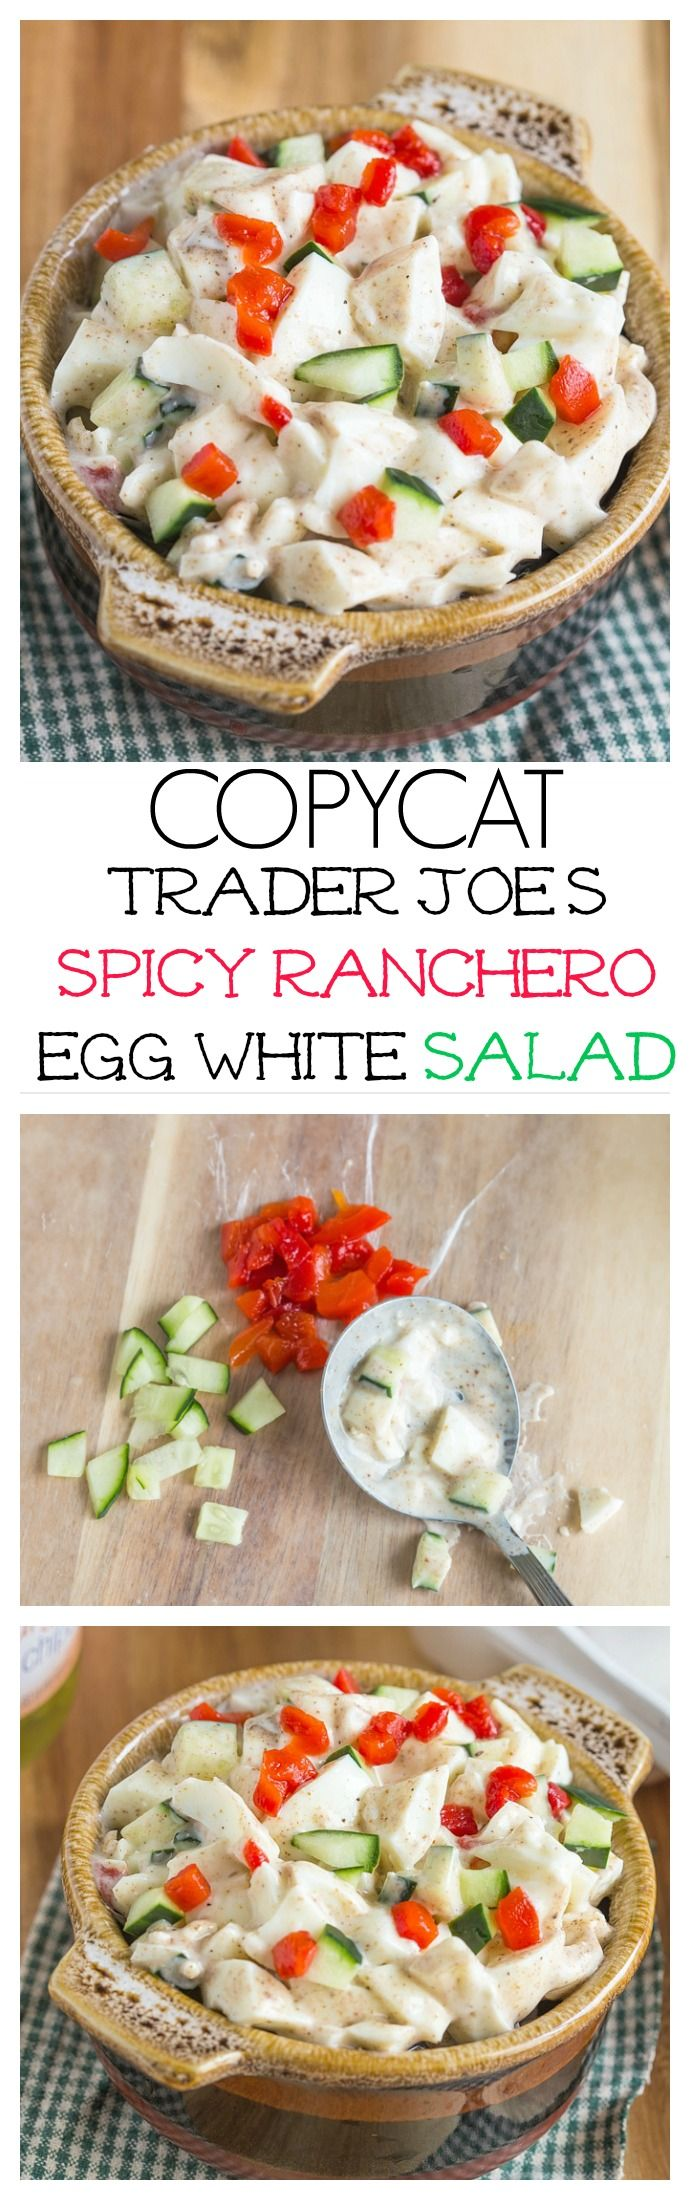 COPYCAT TRADER JOE'S Spicy Ranchero Egg White Salad- The perfect high protein snack or salad recipe with a dairy free option! Paleo and Whole30 too- NO Longer stocked in stores! thebigmansworld.com